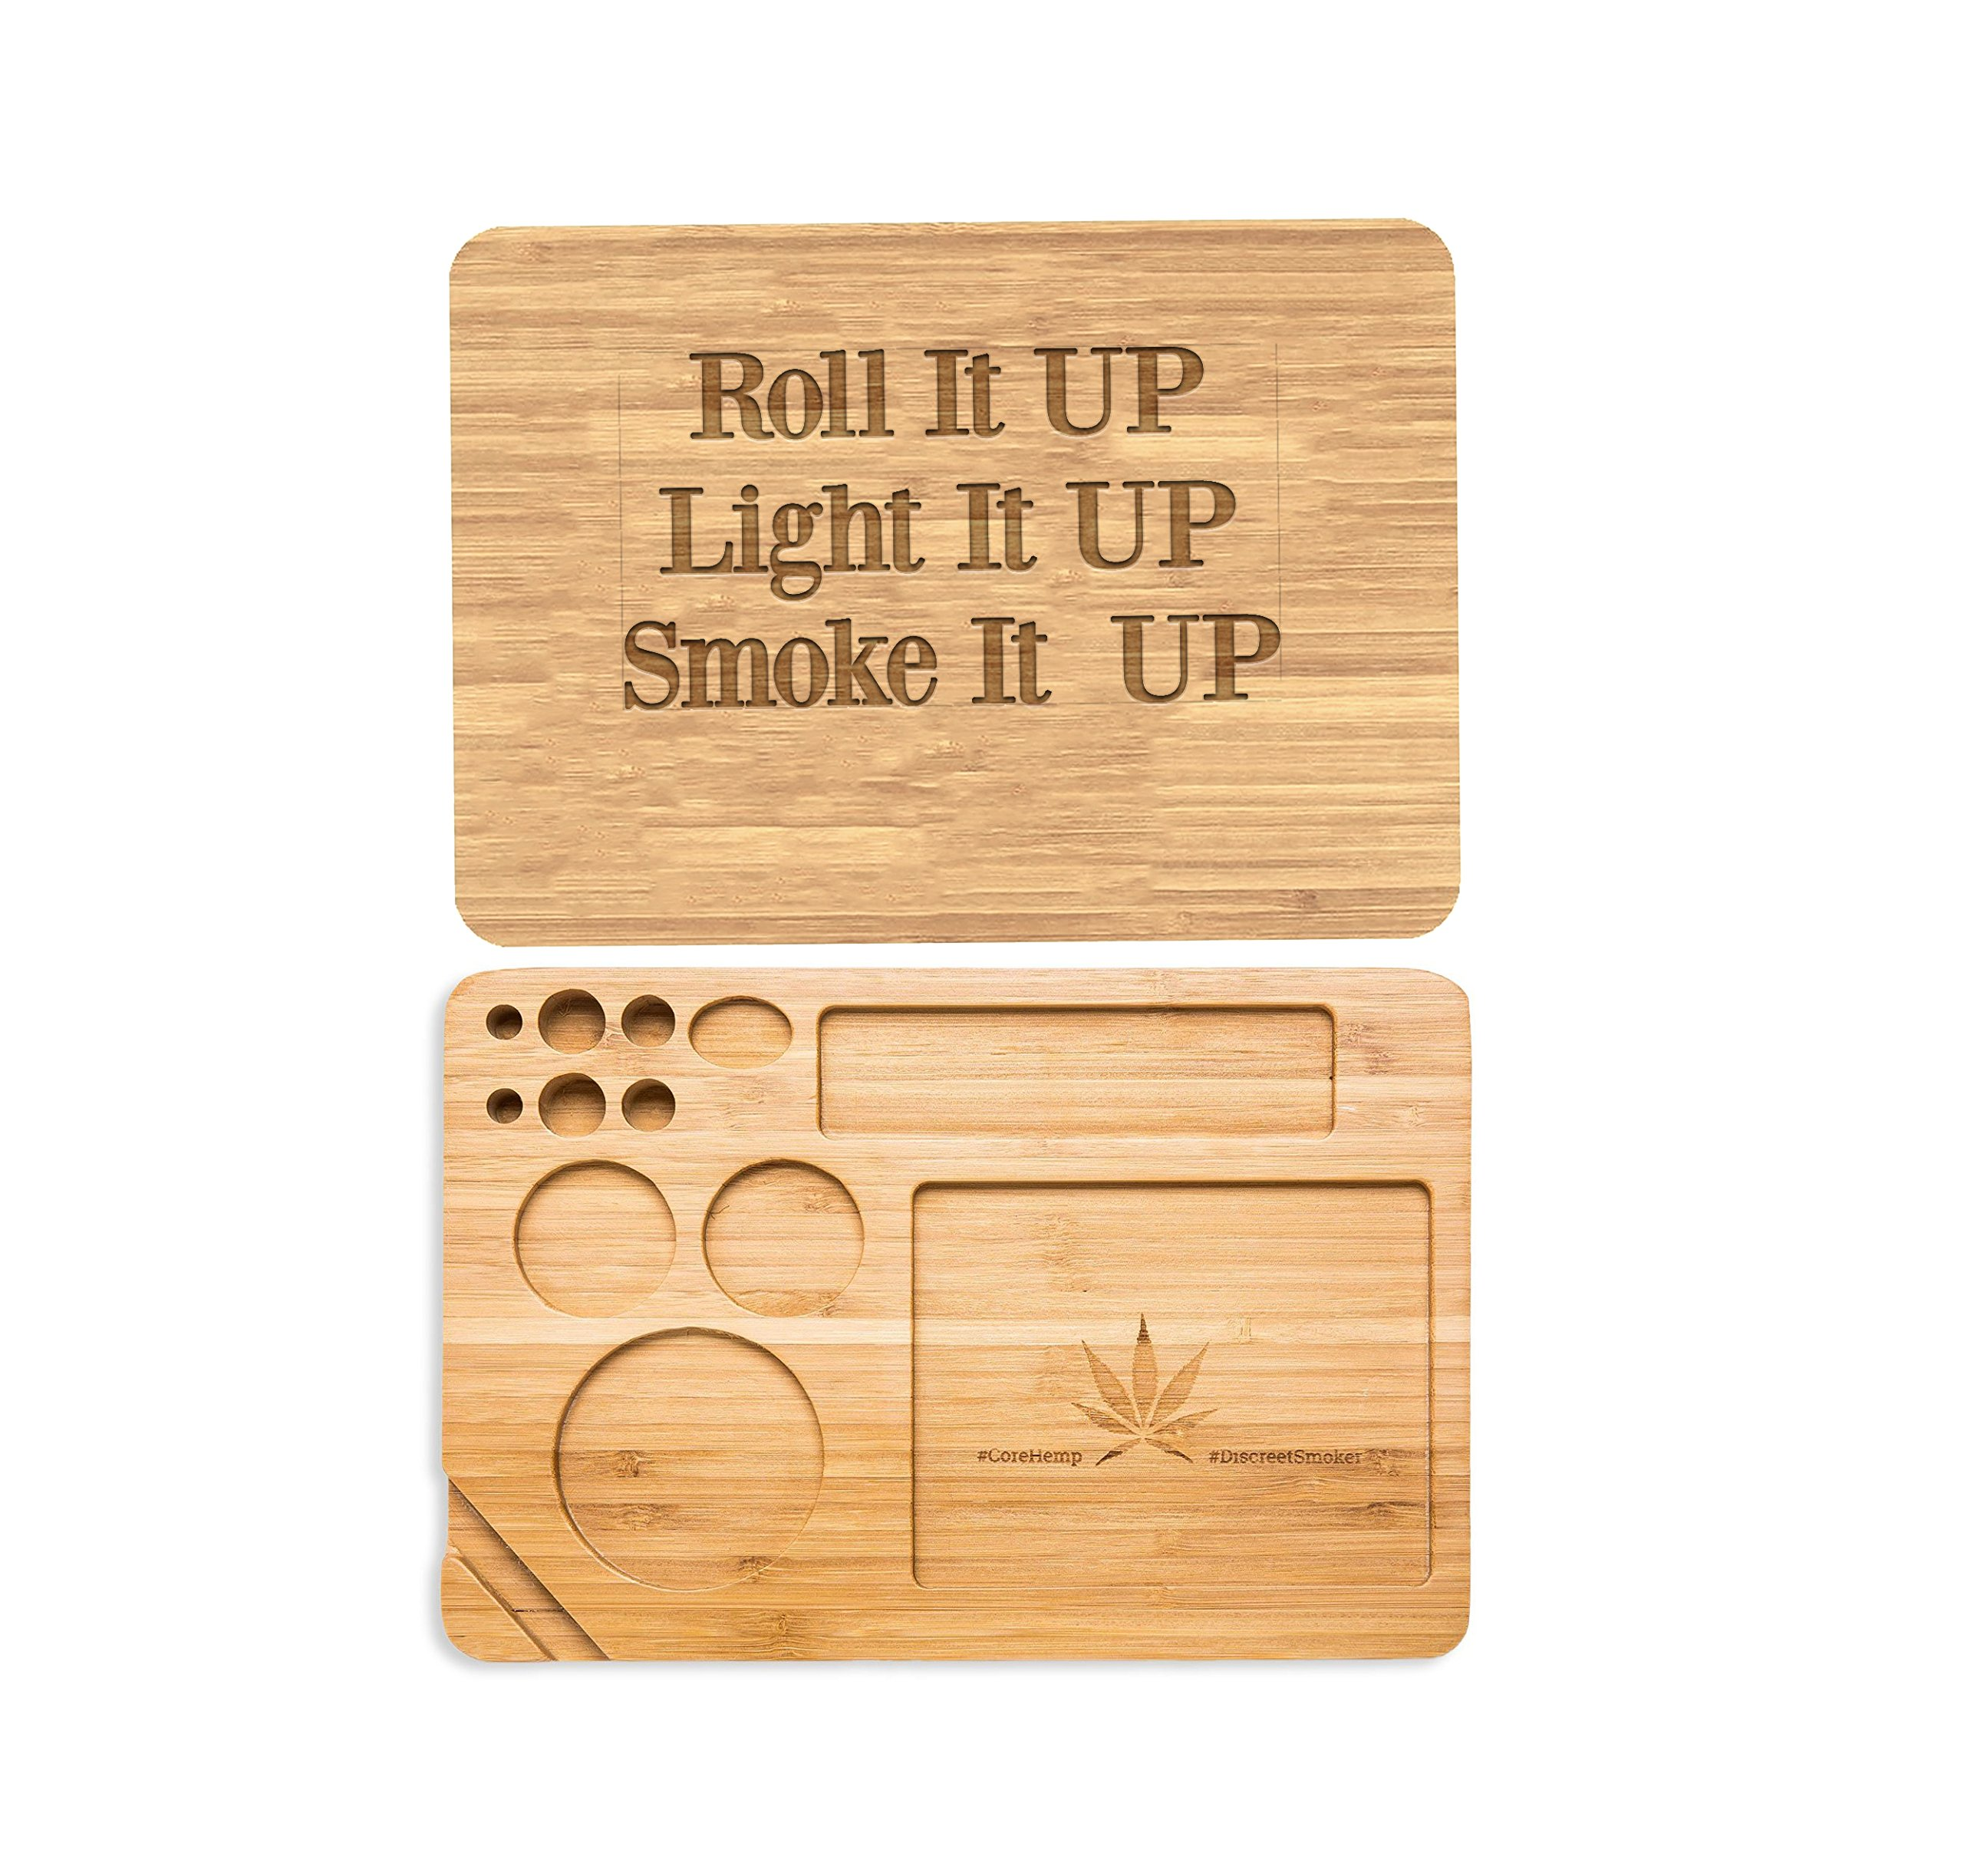 Laser Engraved Customized Personalized Bamboo Rolling Tray. Cut Out,for Rolling Tobacco Cigar Paper,Leaf,Medicinal Herb,Personalize The Back for Free- Roll it Up